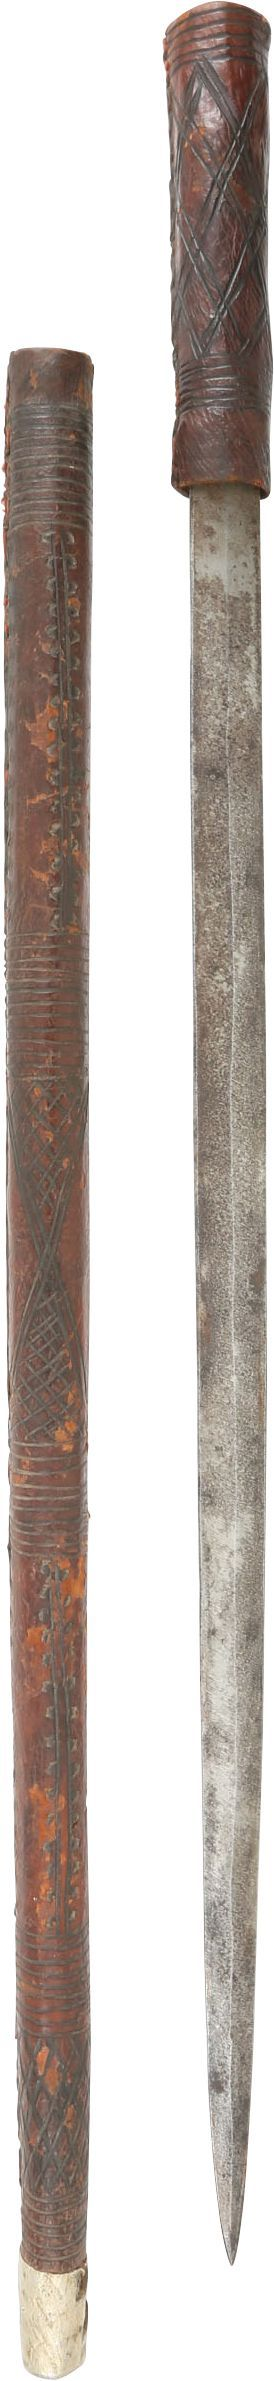 East African Concealed Sword Stick - Product